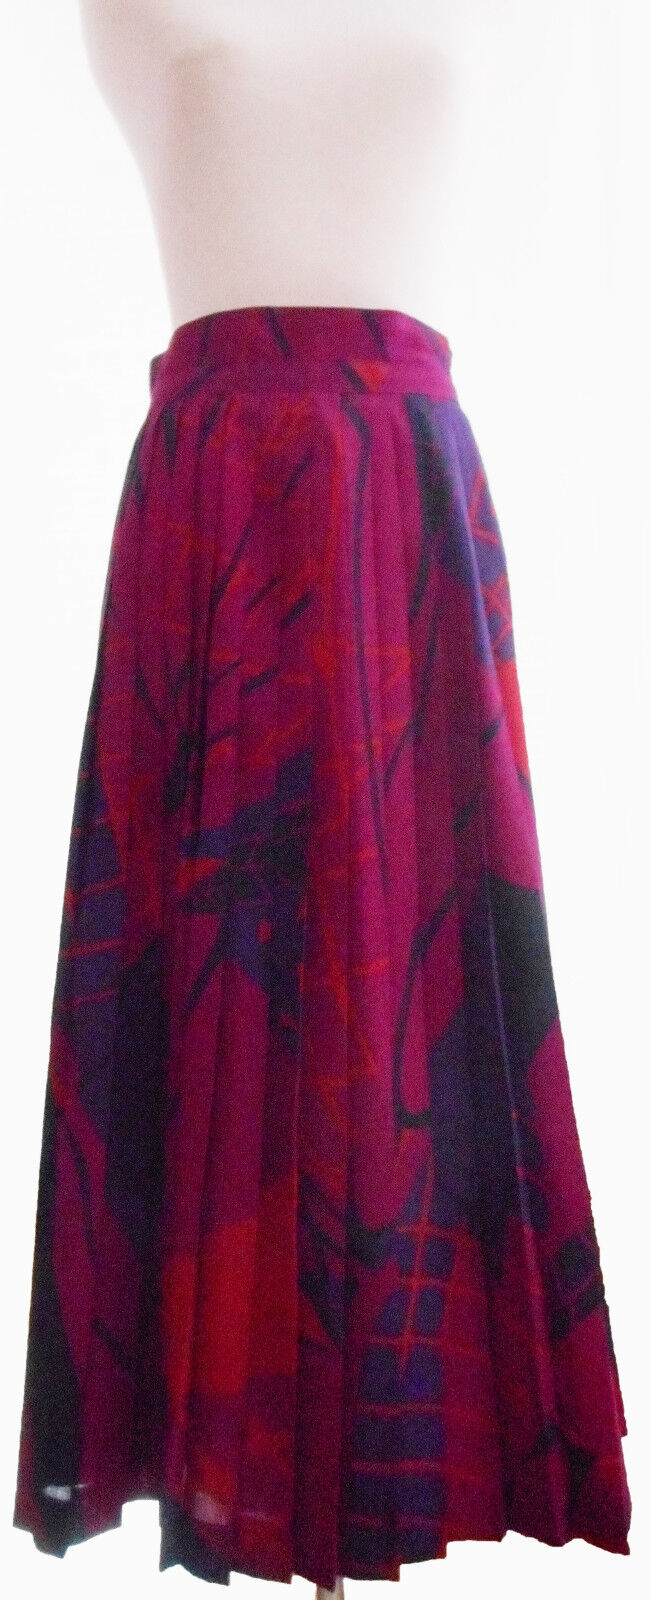 Bruestle pleated skirt, 100% wool, Geometric, Long, red shades, size 38 (S M)